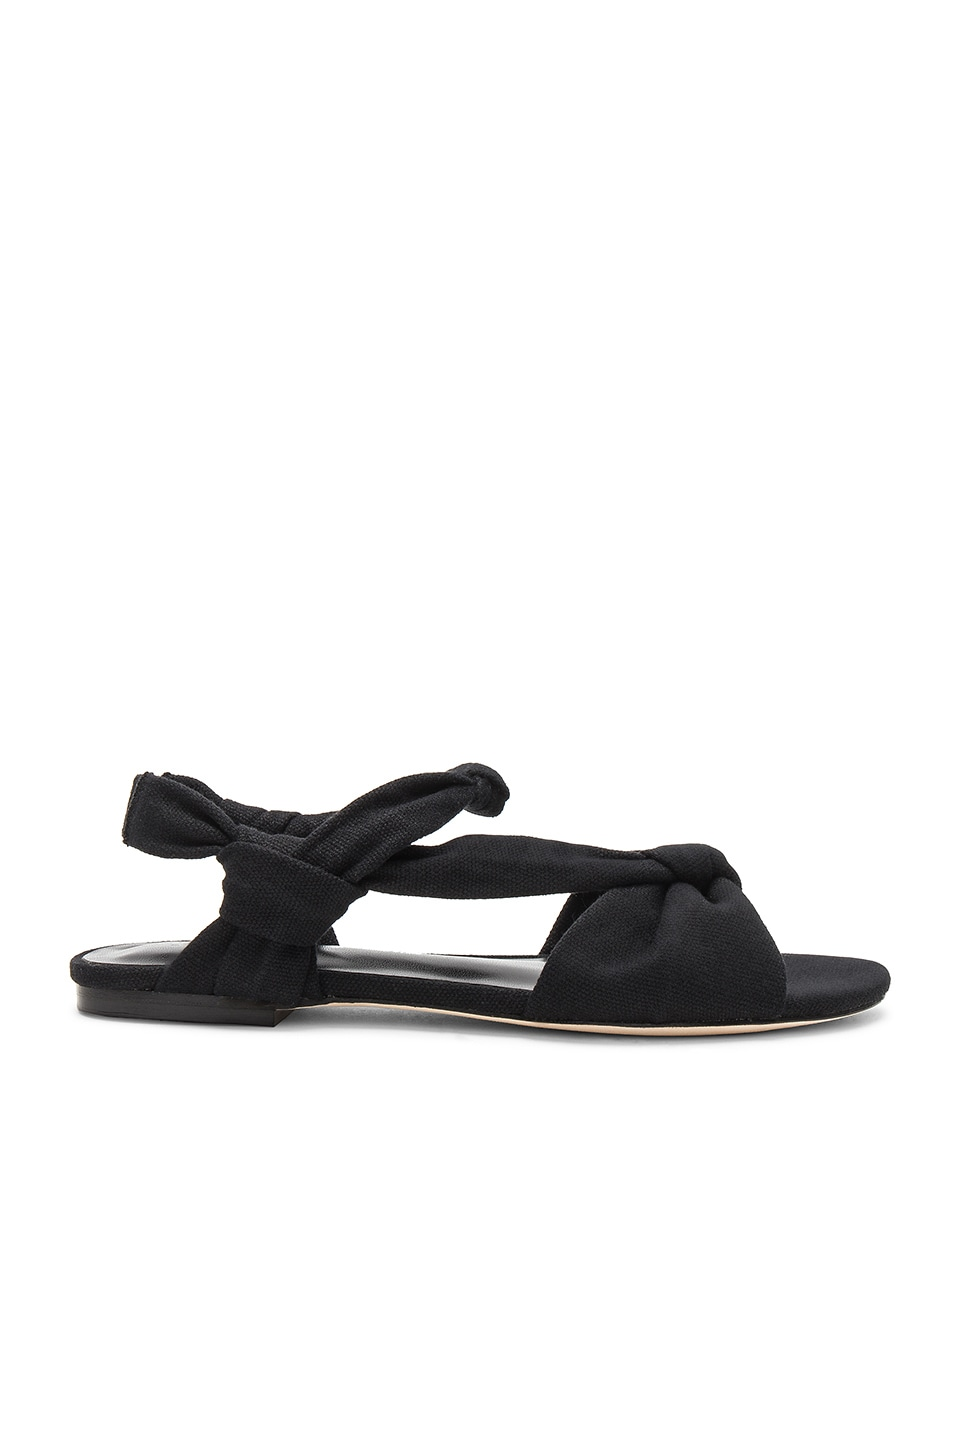 RAYE x House Of Harlow 1960 Micol Sandal in Black